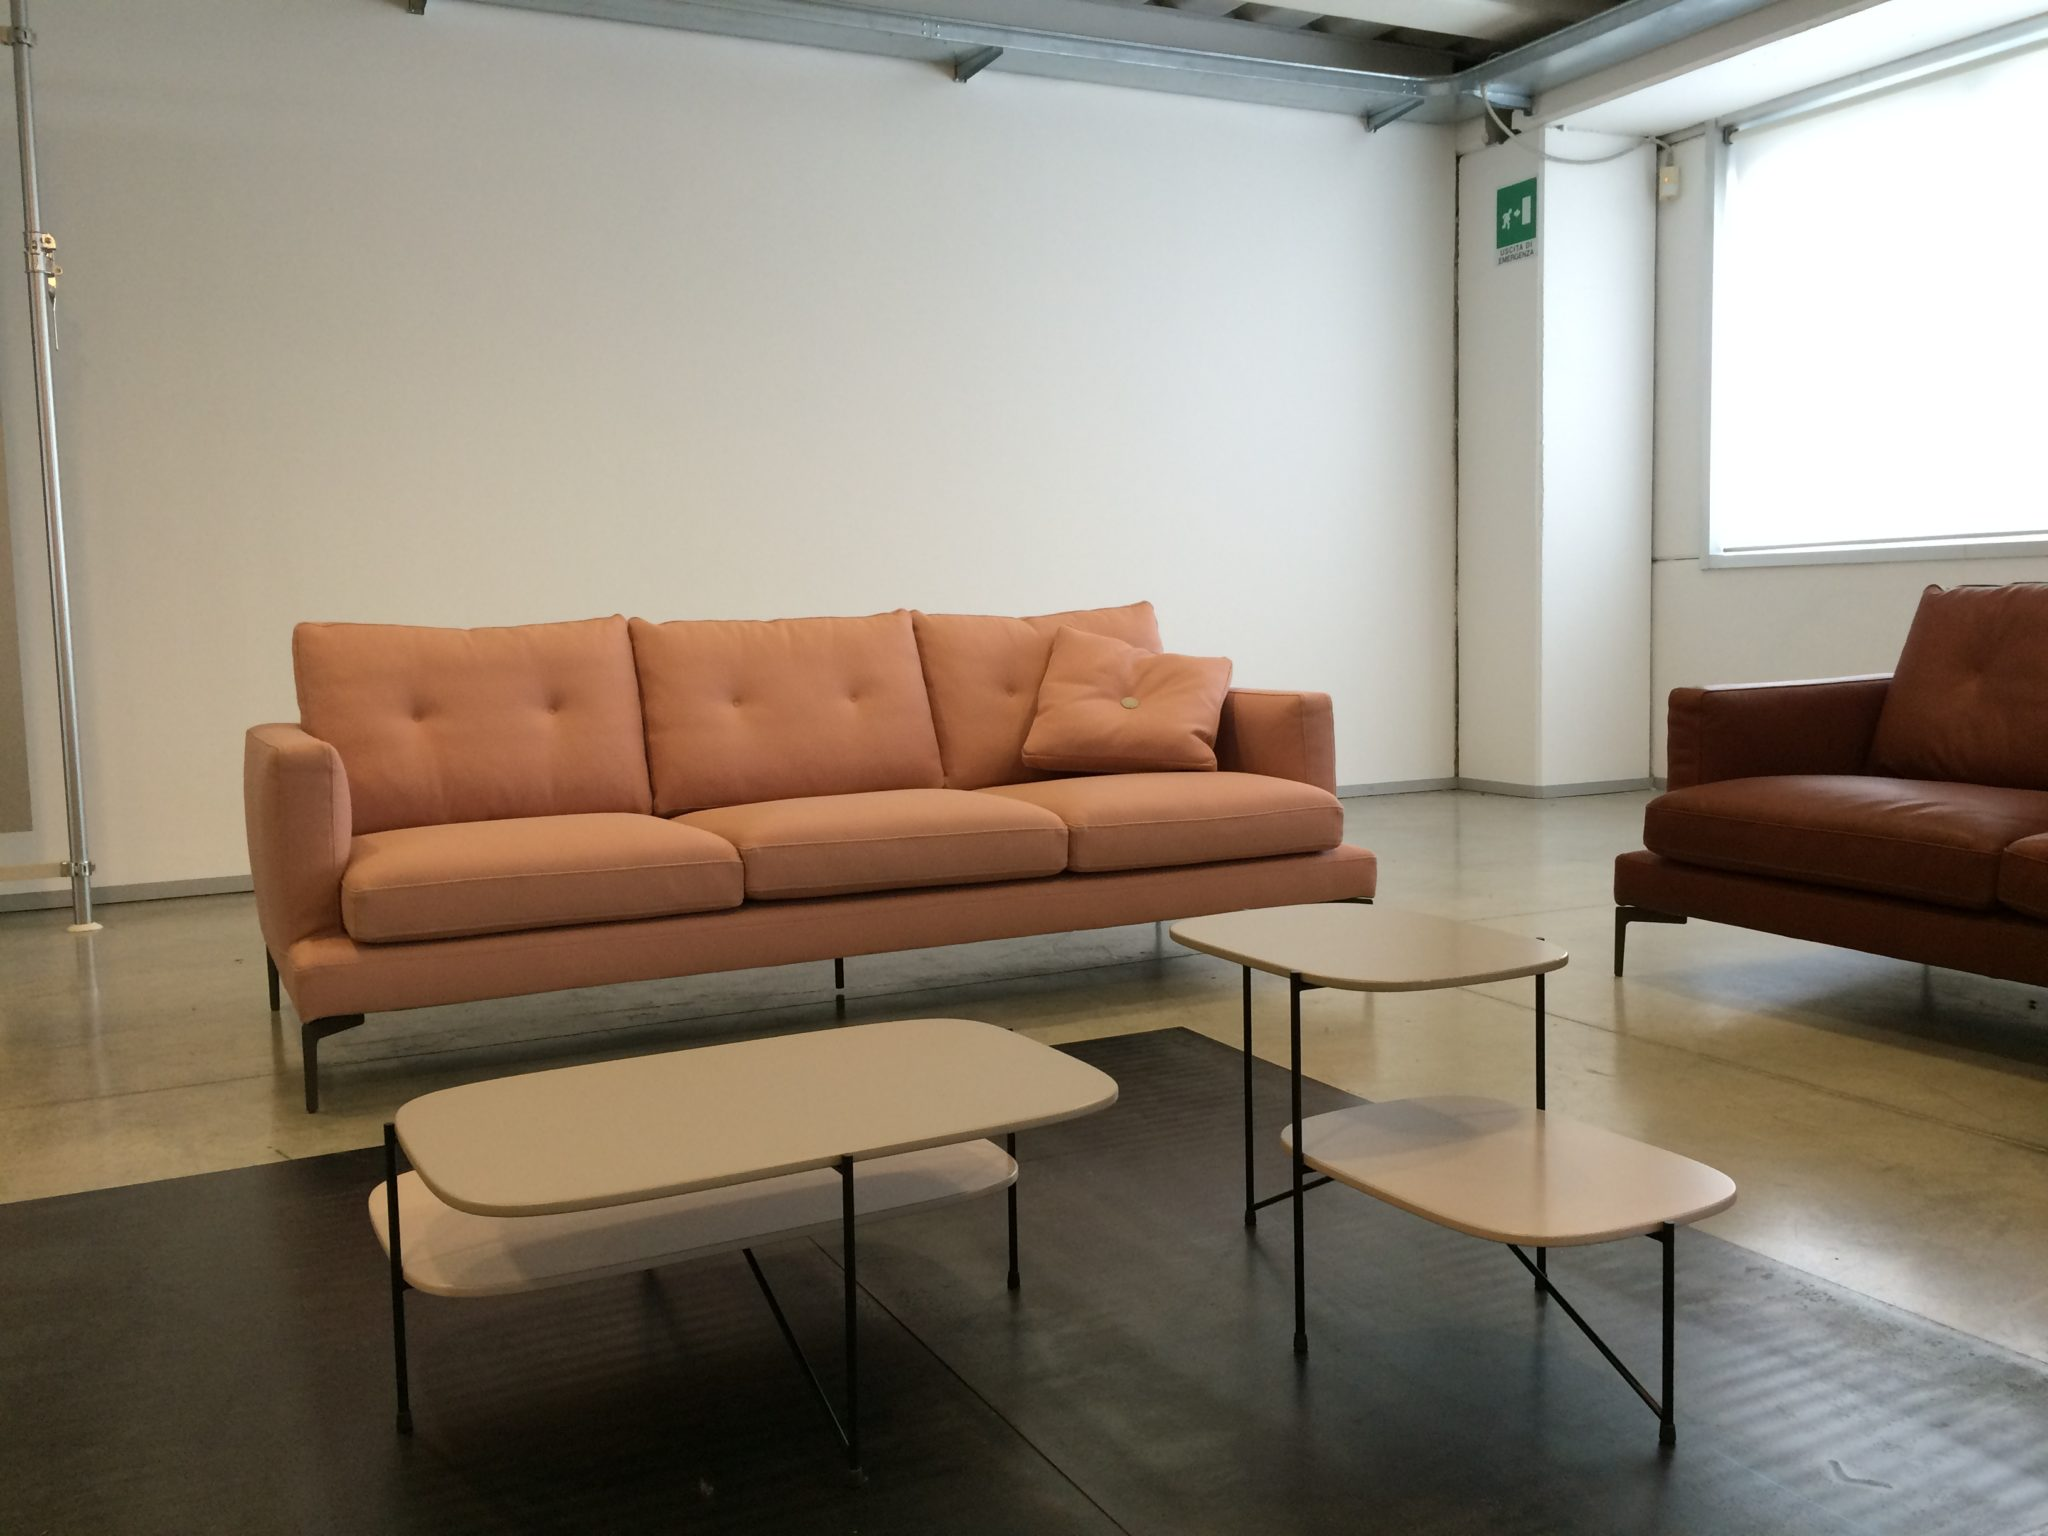 25 how_to_choose_a_perfect_sofa_home_ideas_interior_design_italian_furniture_jak_wybrac_najlepsza_kanape_urzadzanie_mieszkania_meble_wloskie_saba_italia_forelements_blog